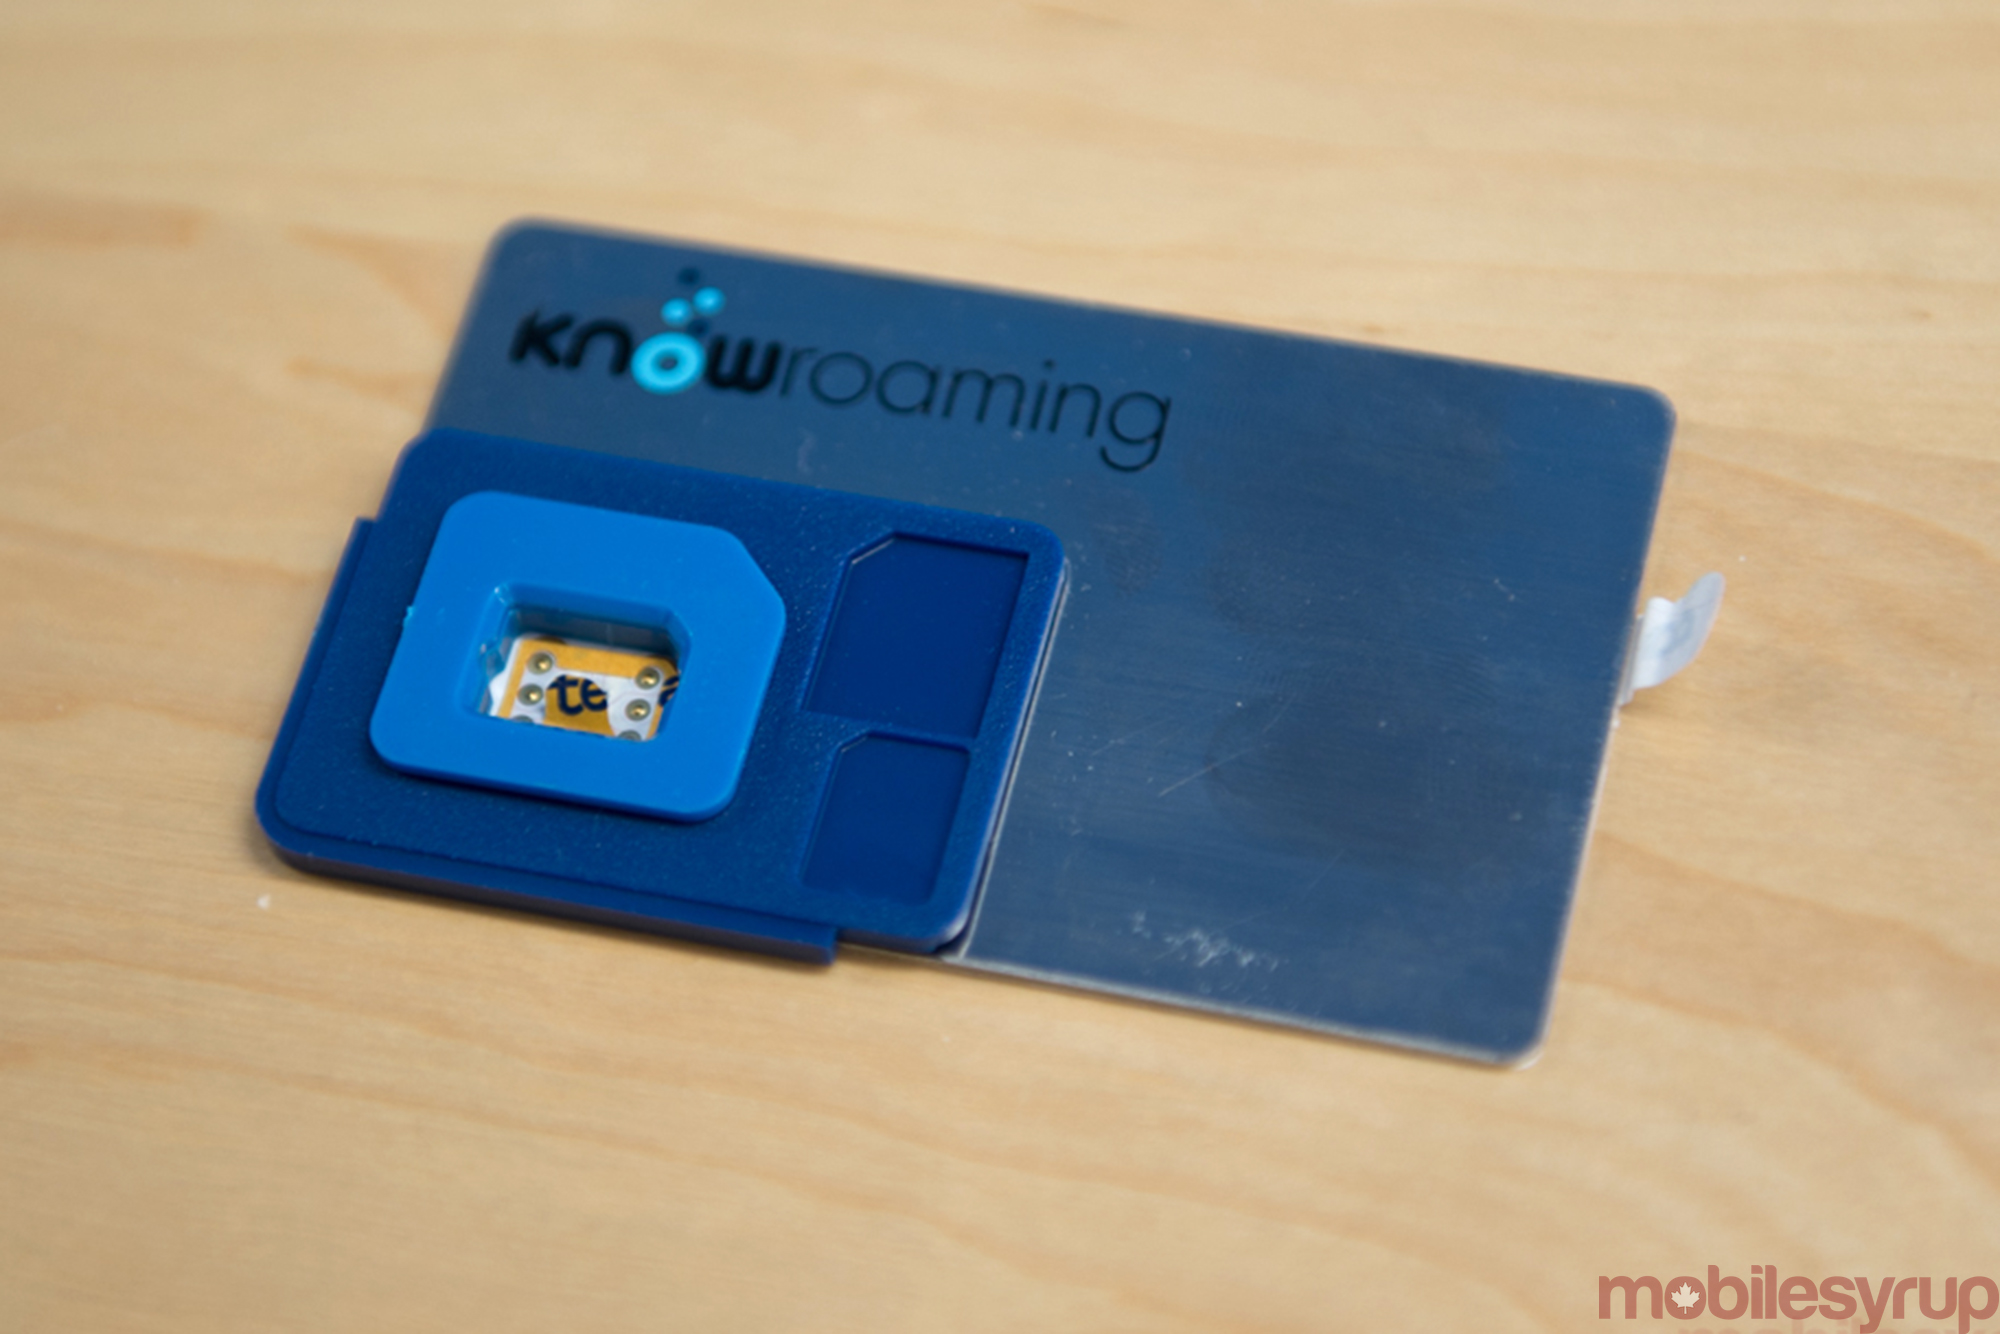 knowroaming-1